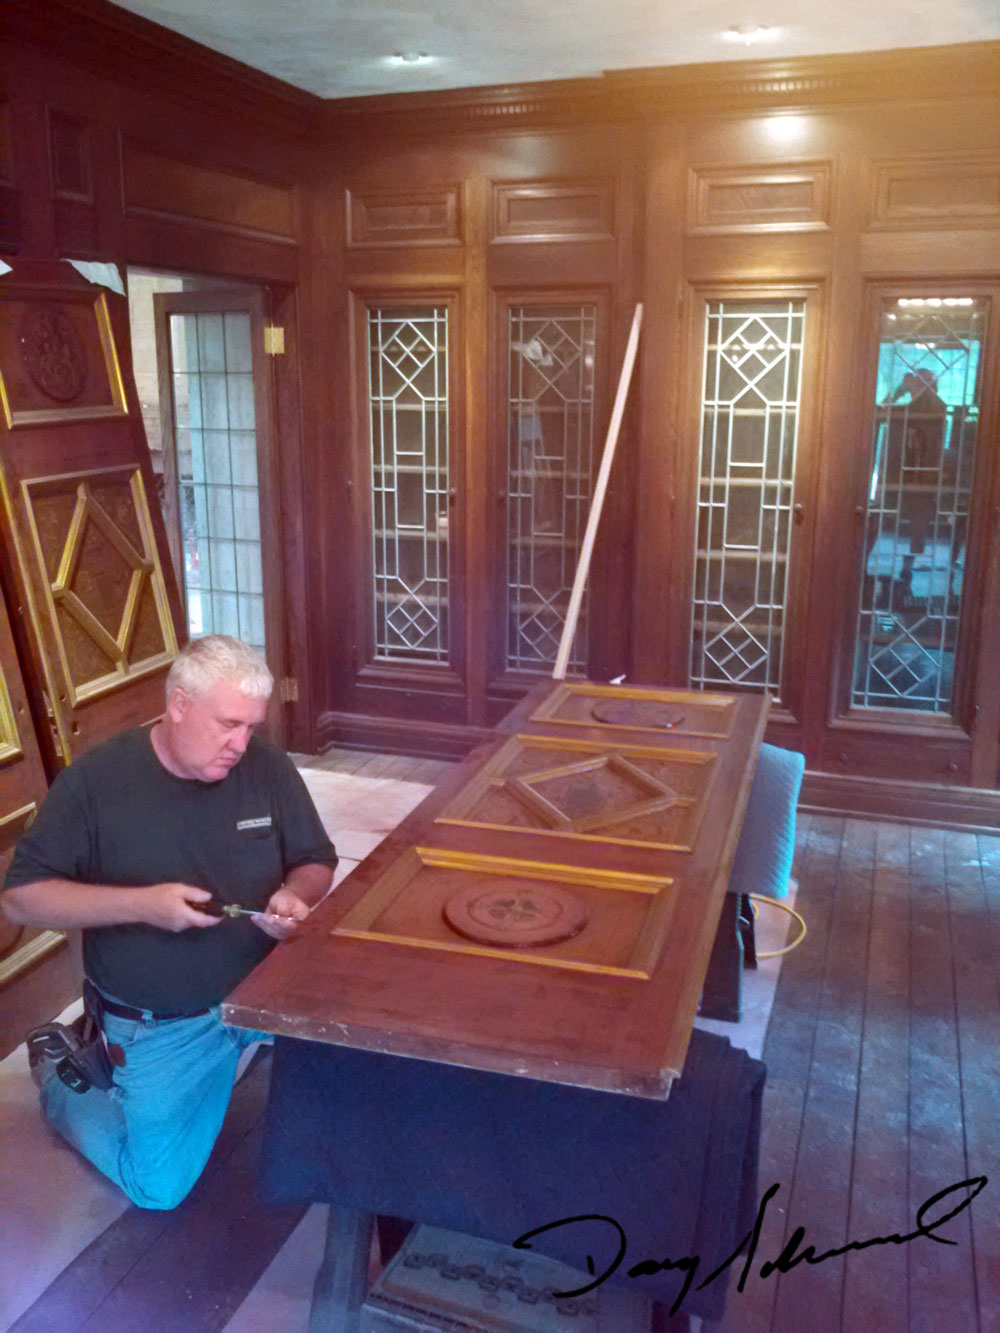 Doug Marvel at work on one of the intricate doors at the Parry Mansion